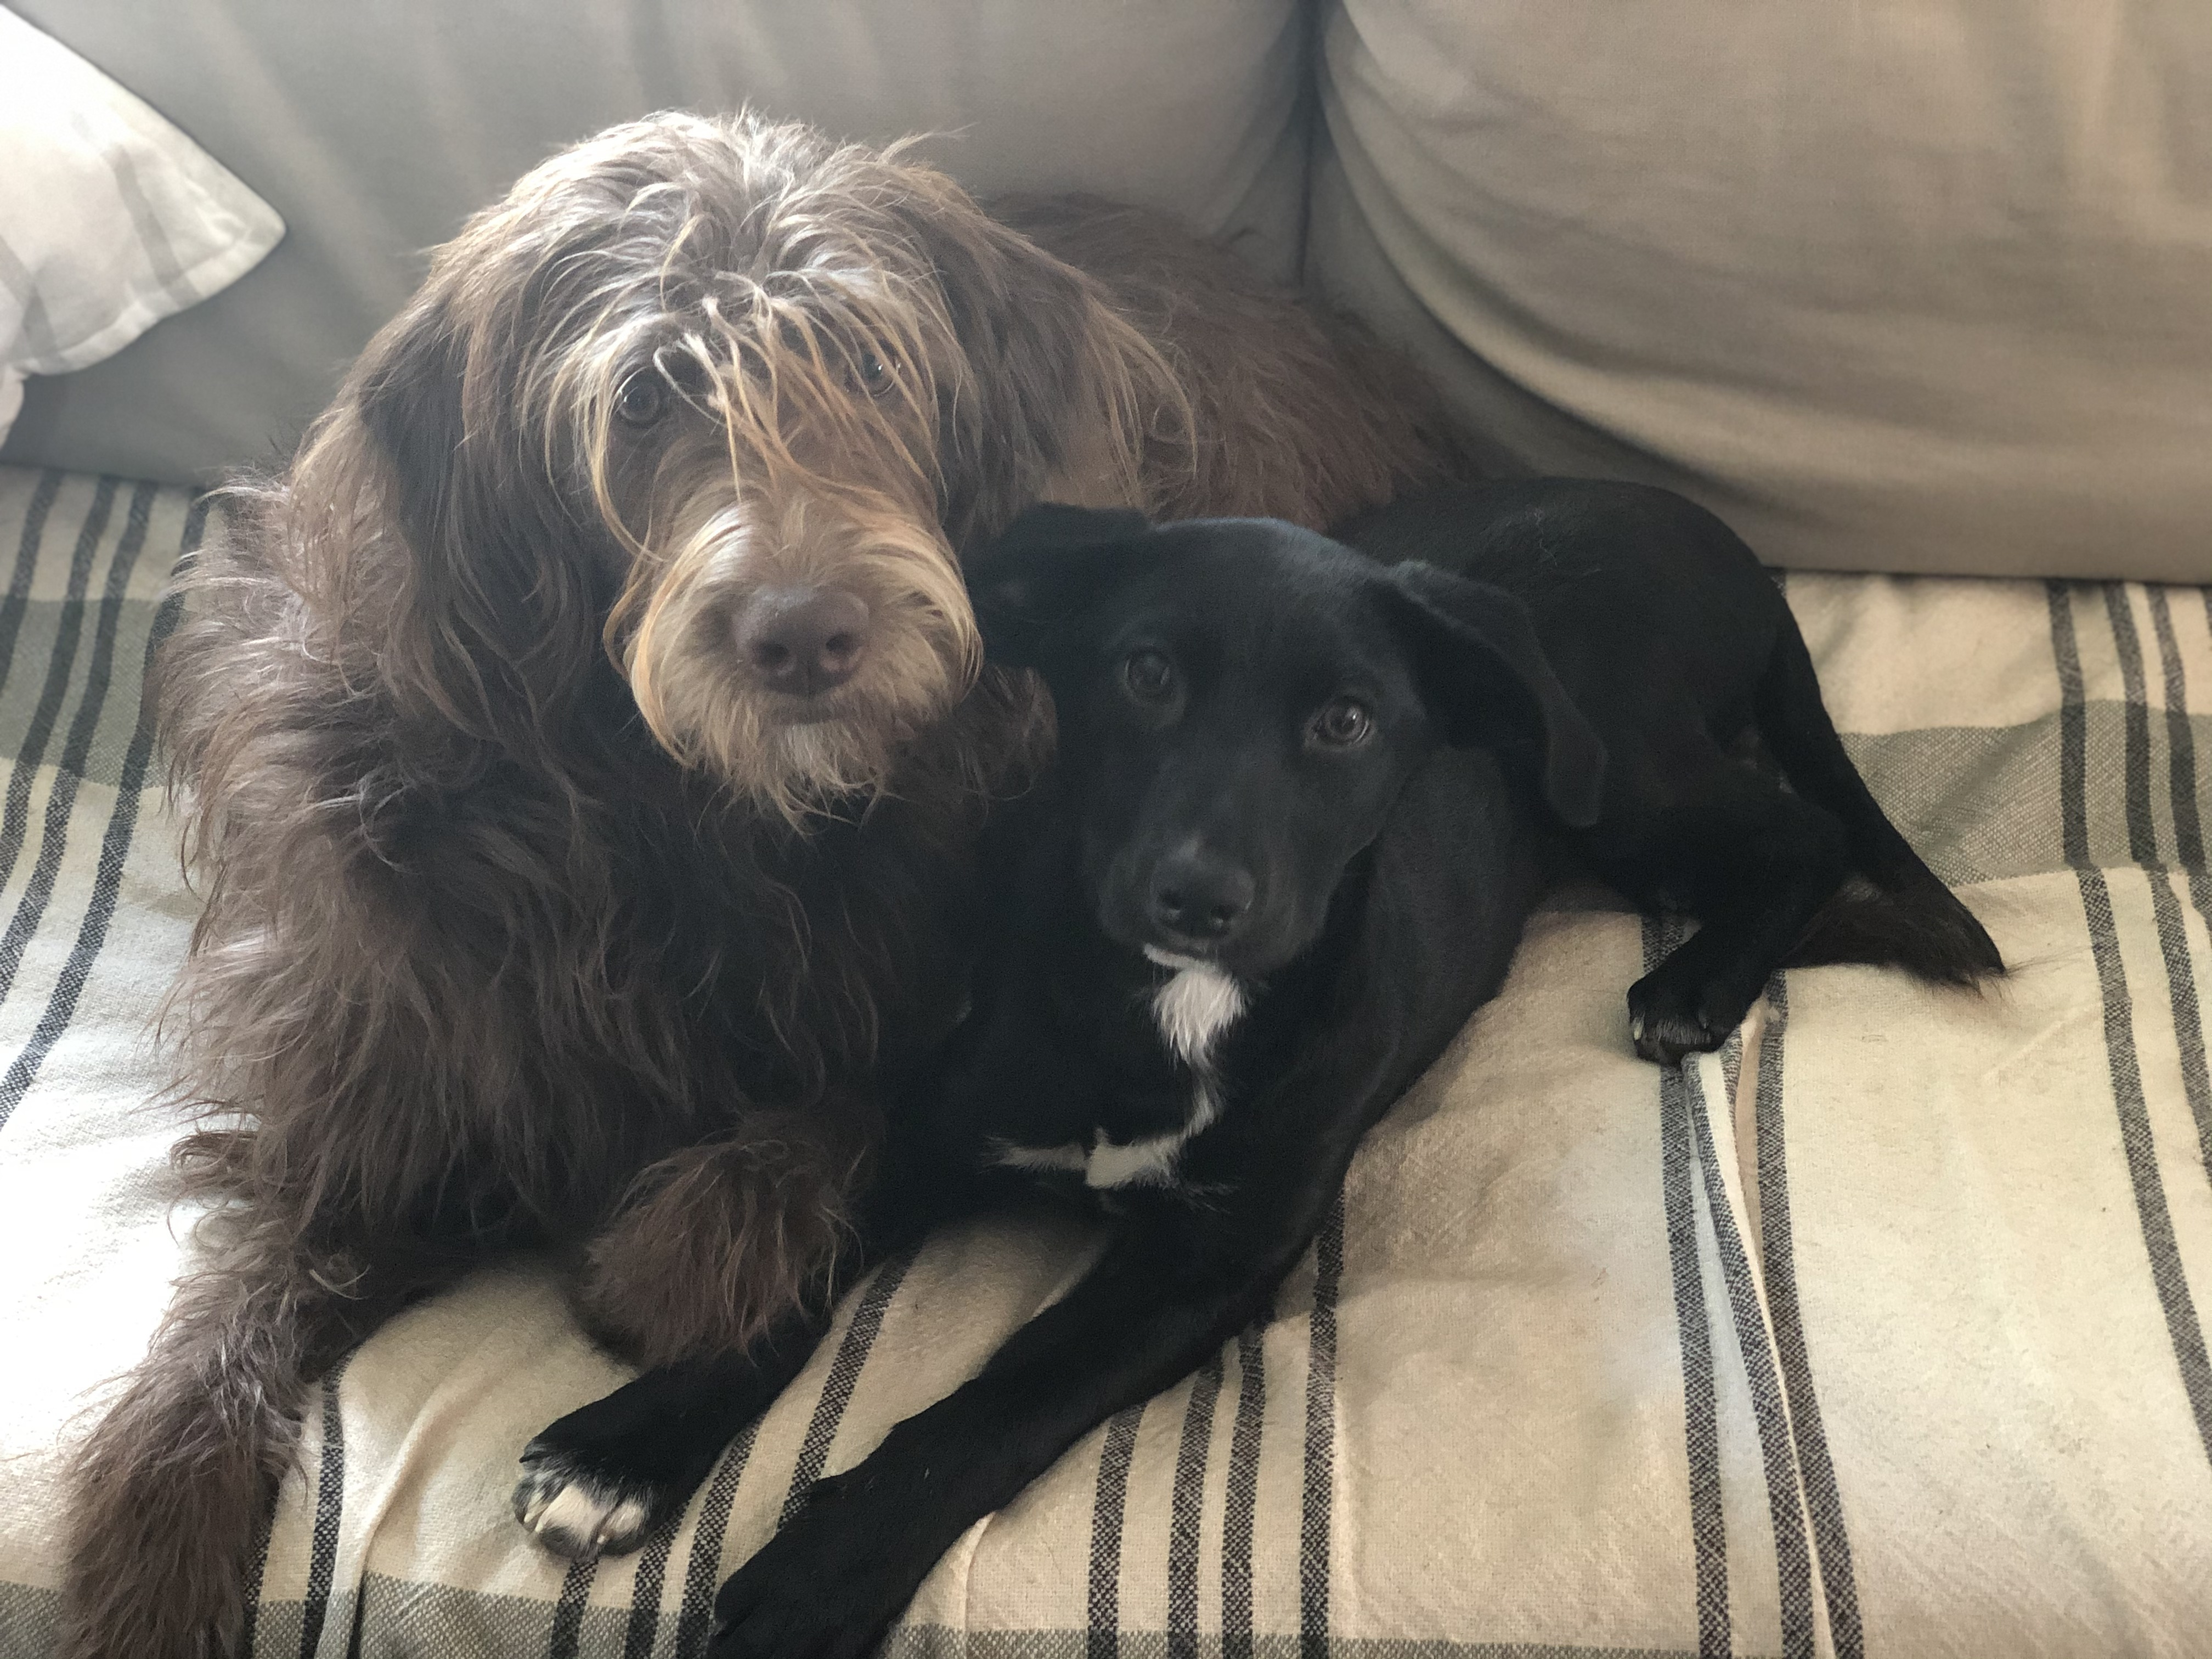 Two dogs sitting on couch together